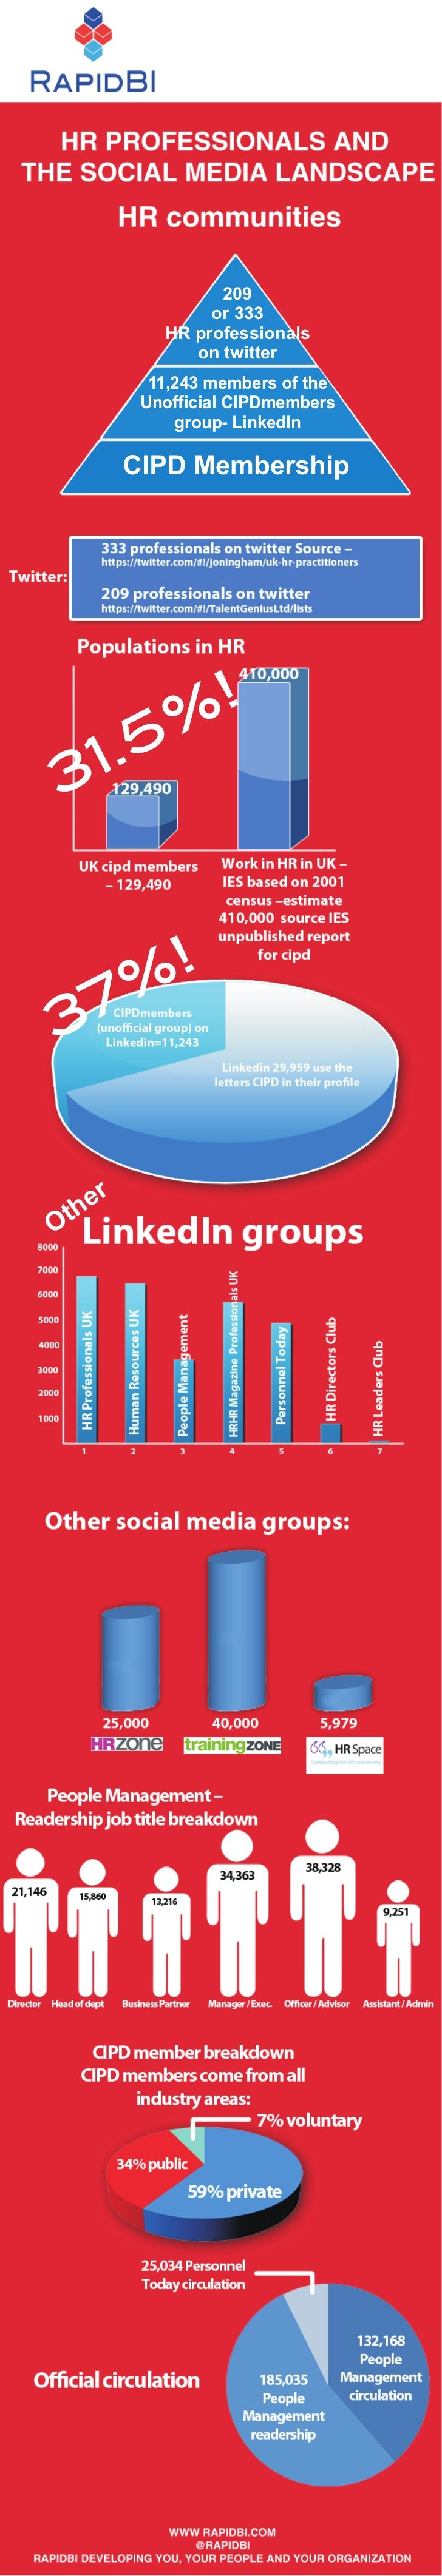 209                  or 333             HR professionals                on twitter            11,243 members of the       ...